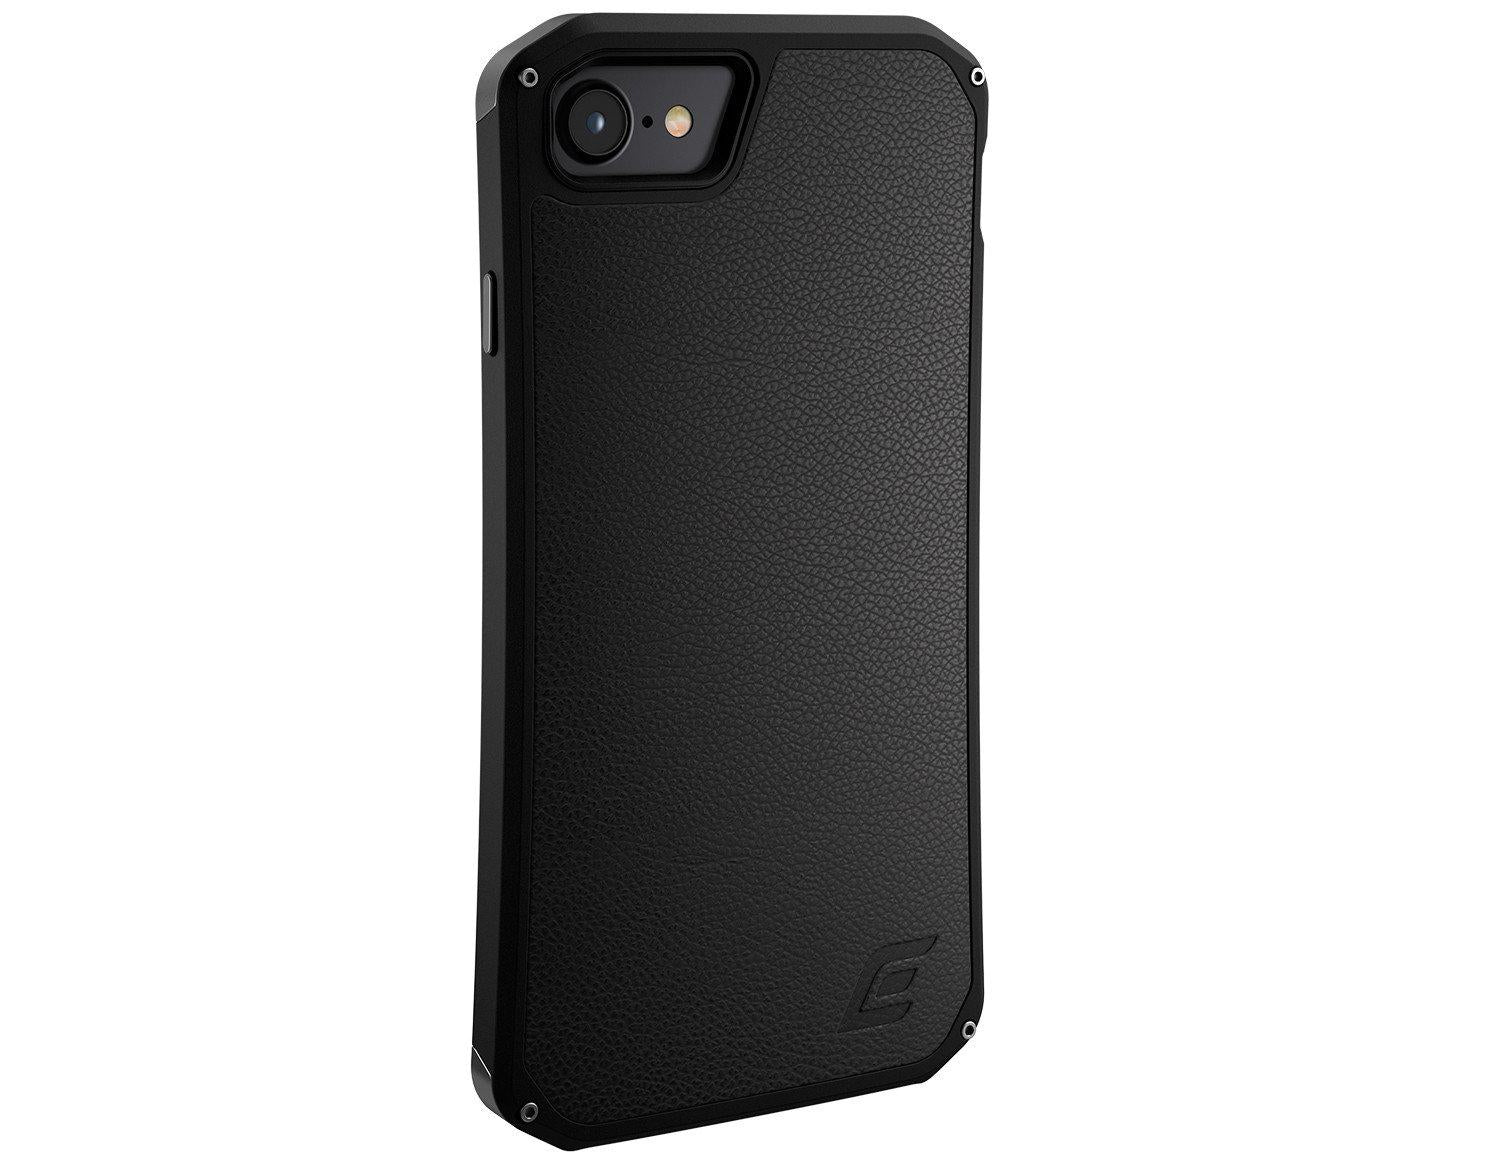 reputable site 40537 5e85b ELEMENT CASE Solace LX For iPhone 8 / 7